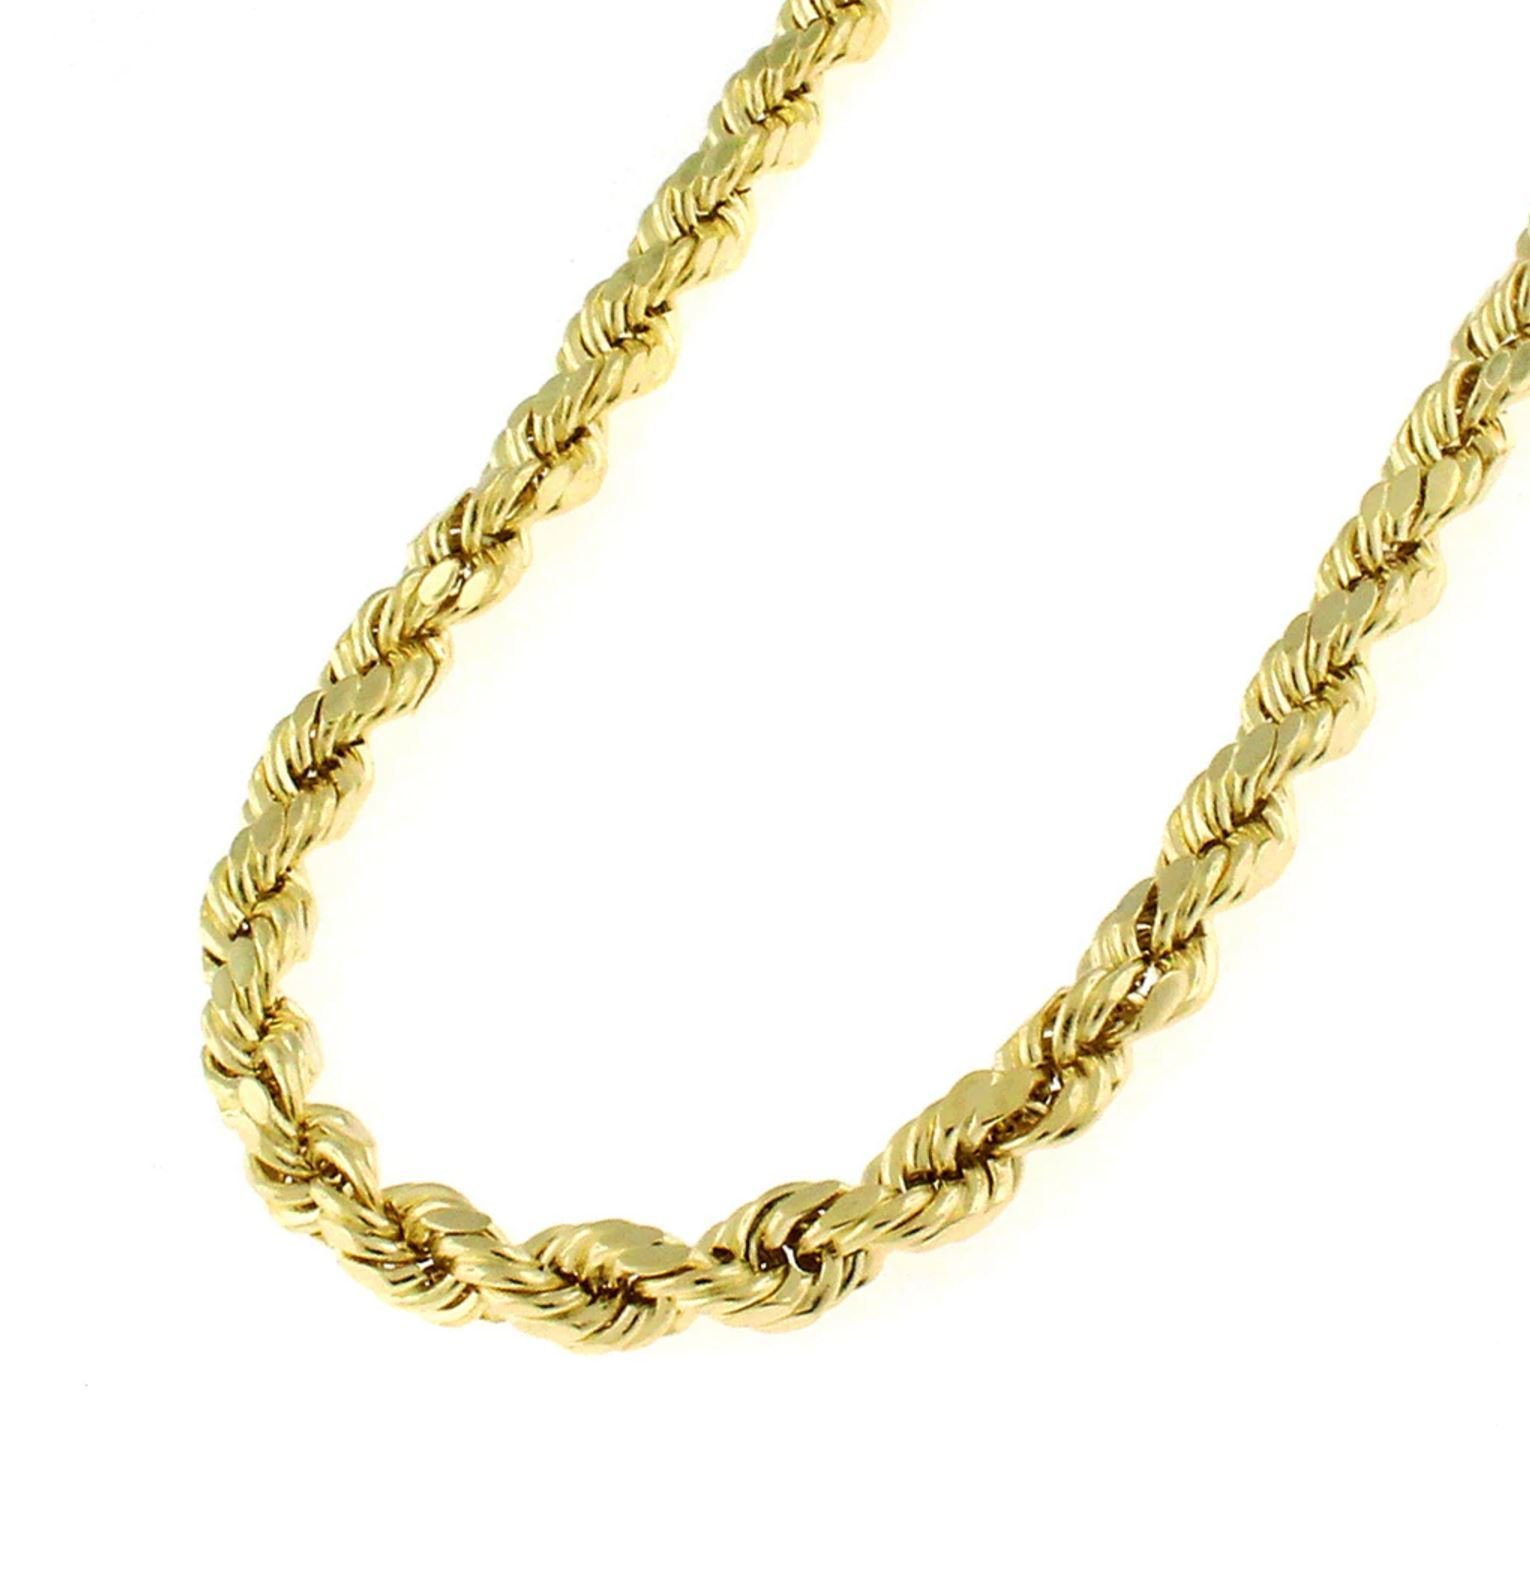 14K Solid Yellow Gold 1.5mm, 2mm, or 3.2mm Diamond Cut Rope Chain Necklace Unisex Sizes 16''-30'' -Solid Gold Heavyweight (18, 3.2mm)